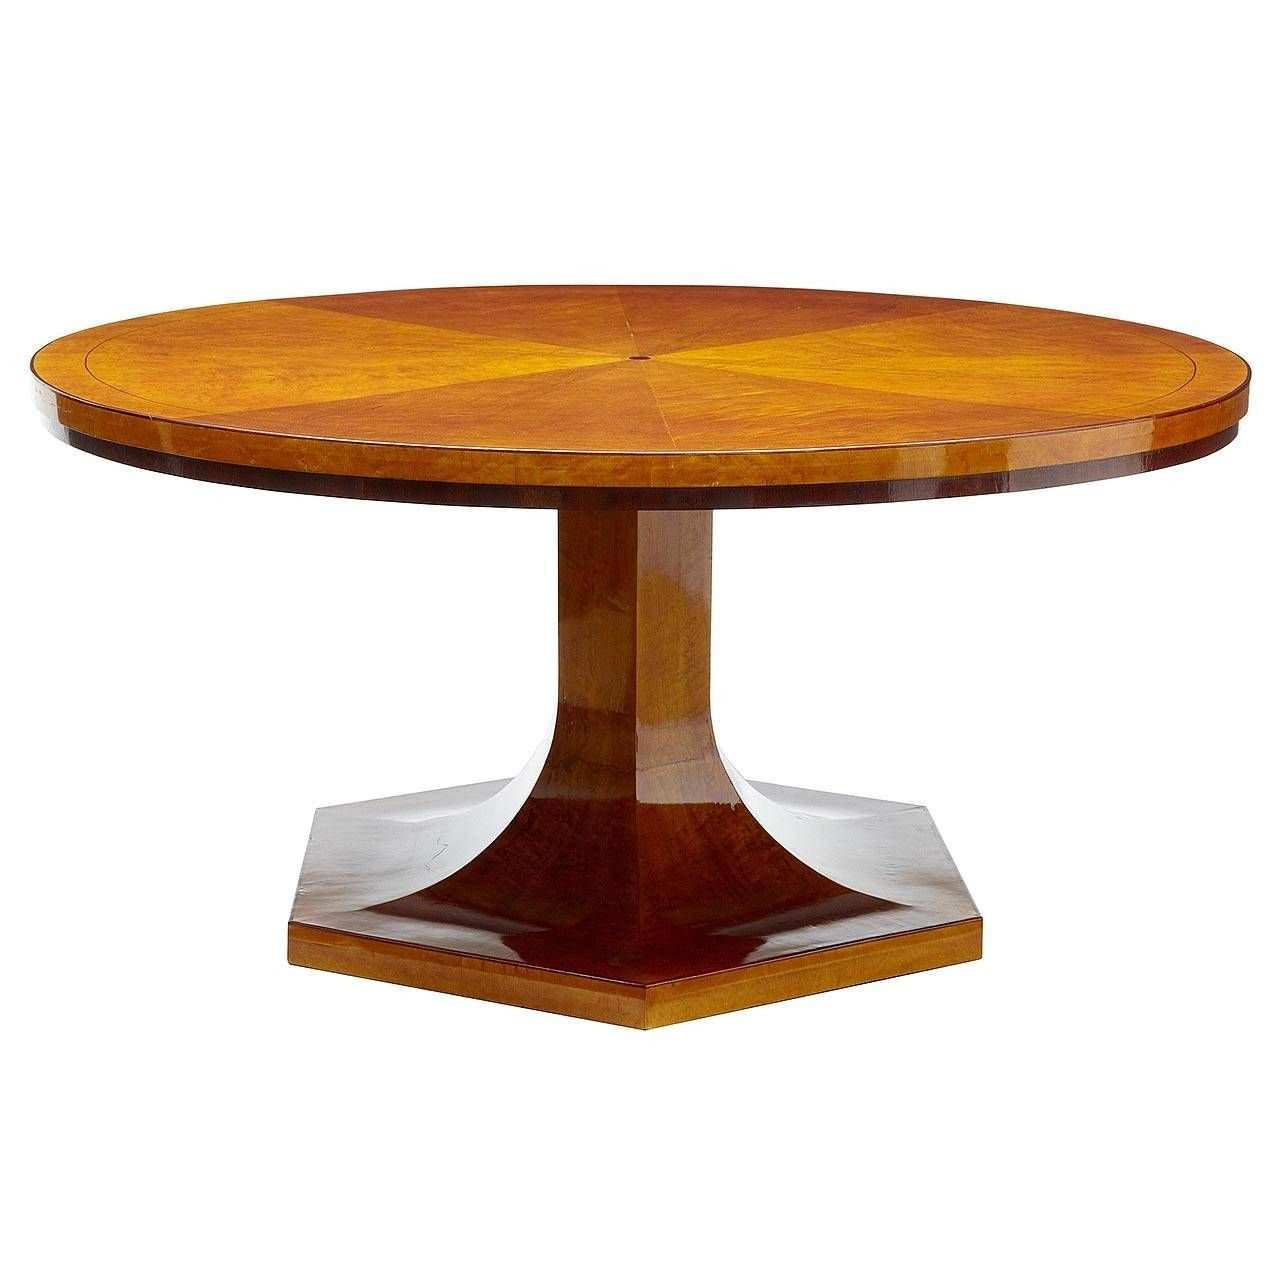 1920s Large Art Deco Birch Round Dining Table